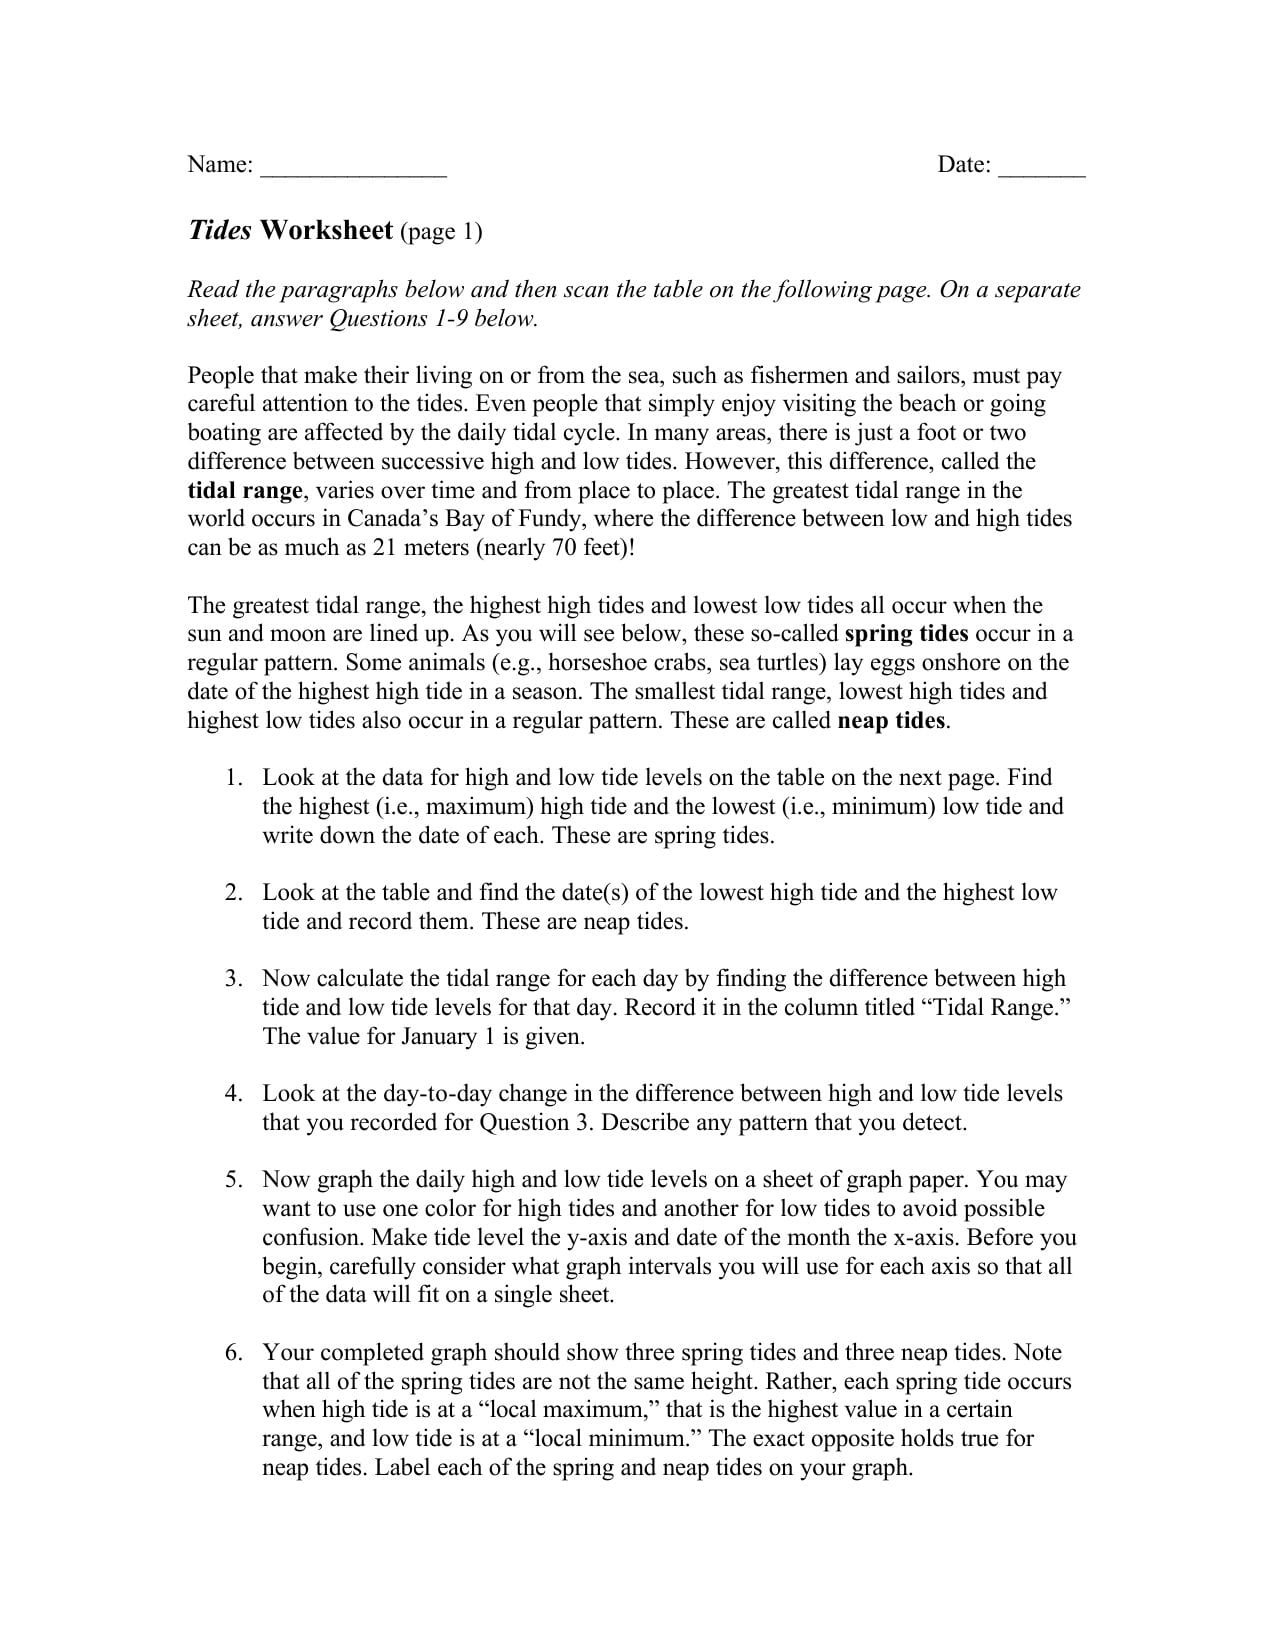 Tides Worksheet For Graphing The Tides Worksheet Answers